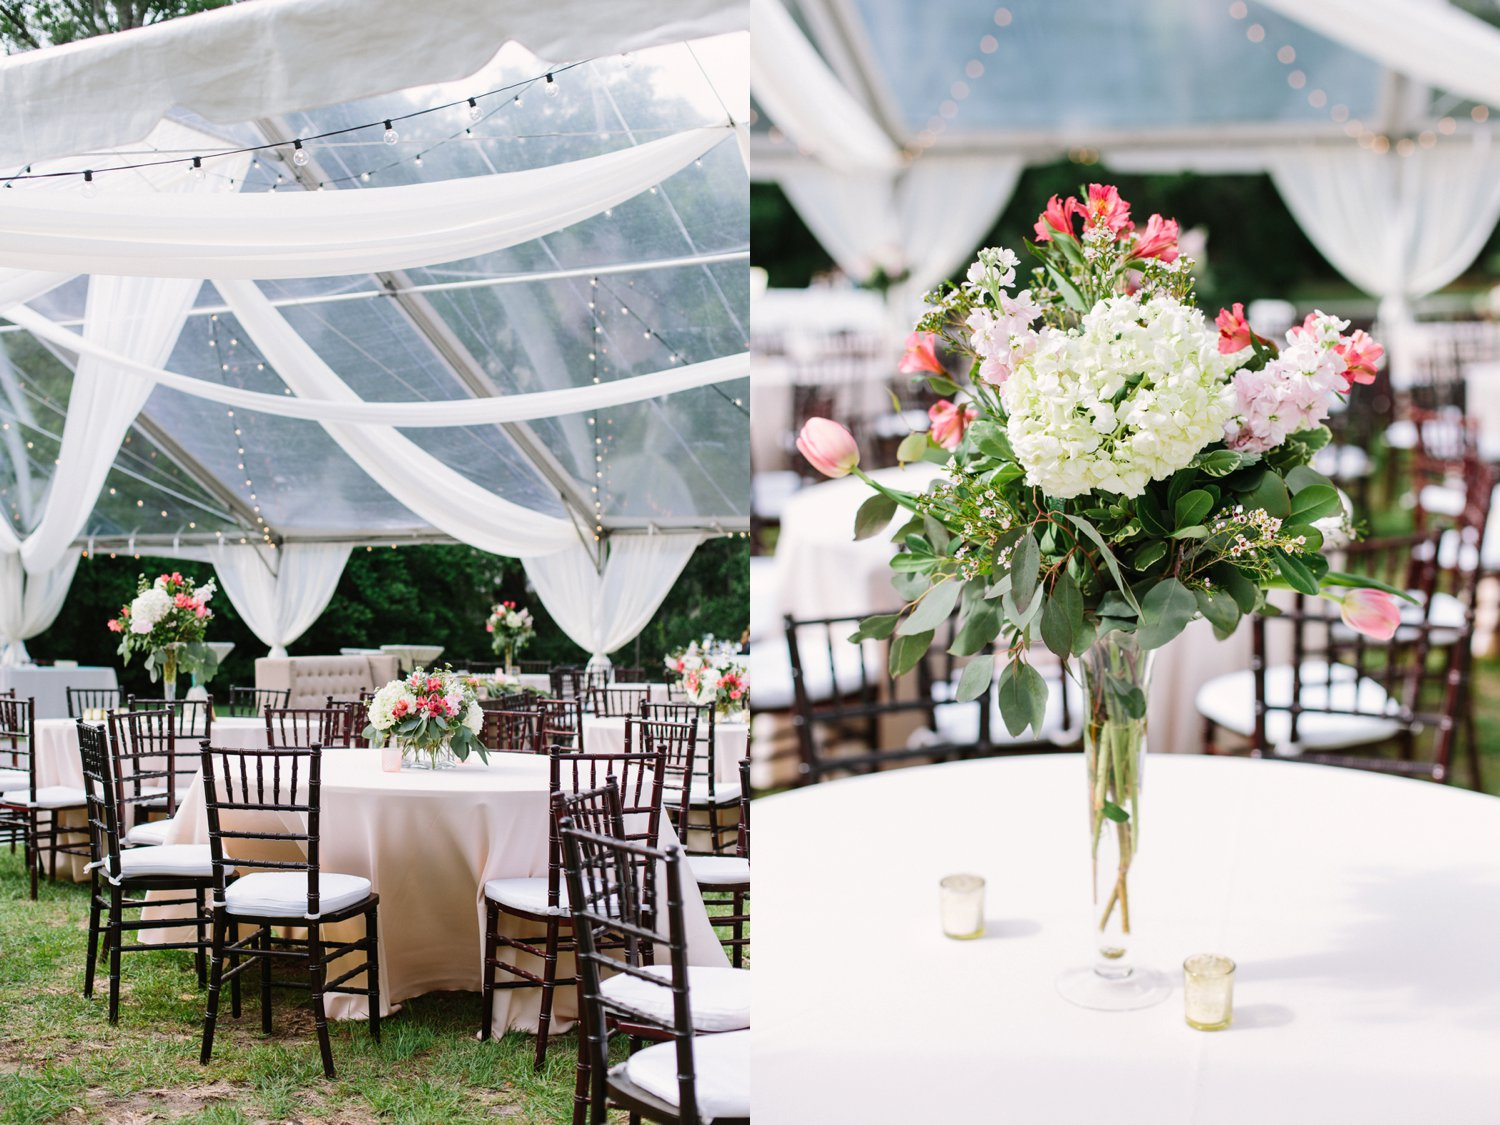 Lindsey_A_Miller_Photography_mcleod_plantation_wedding_charleston_south_carolina_clear_tent_spring_mod_events_056.jpg